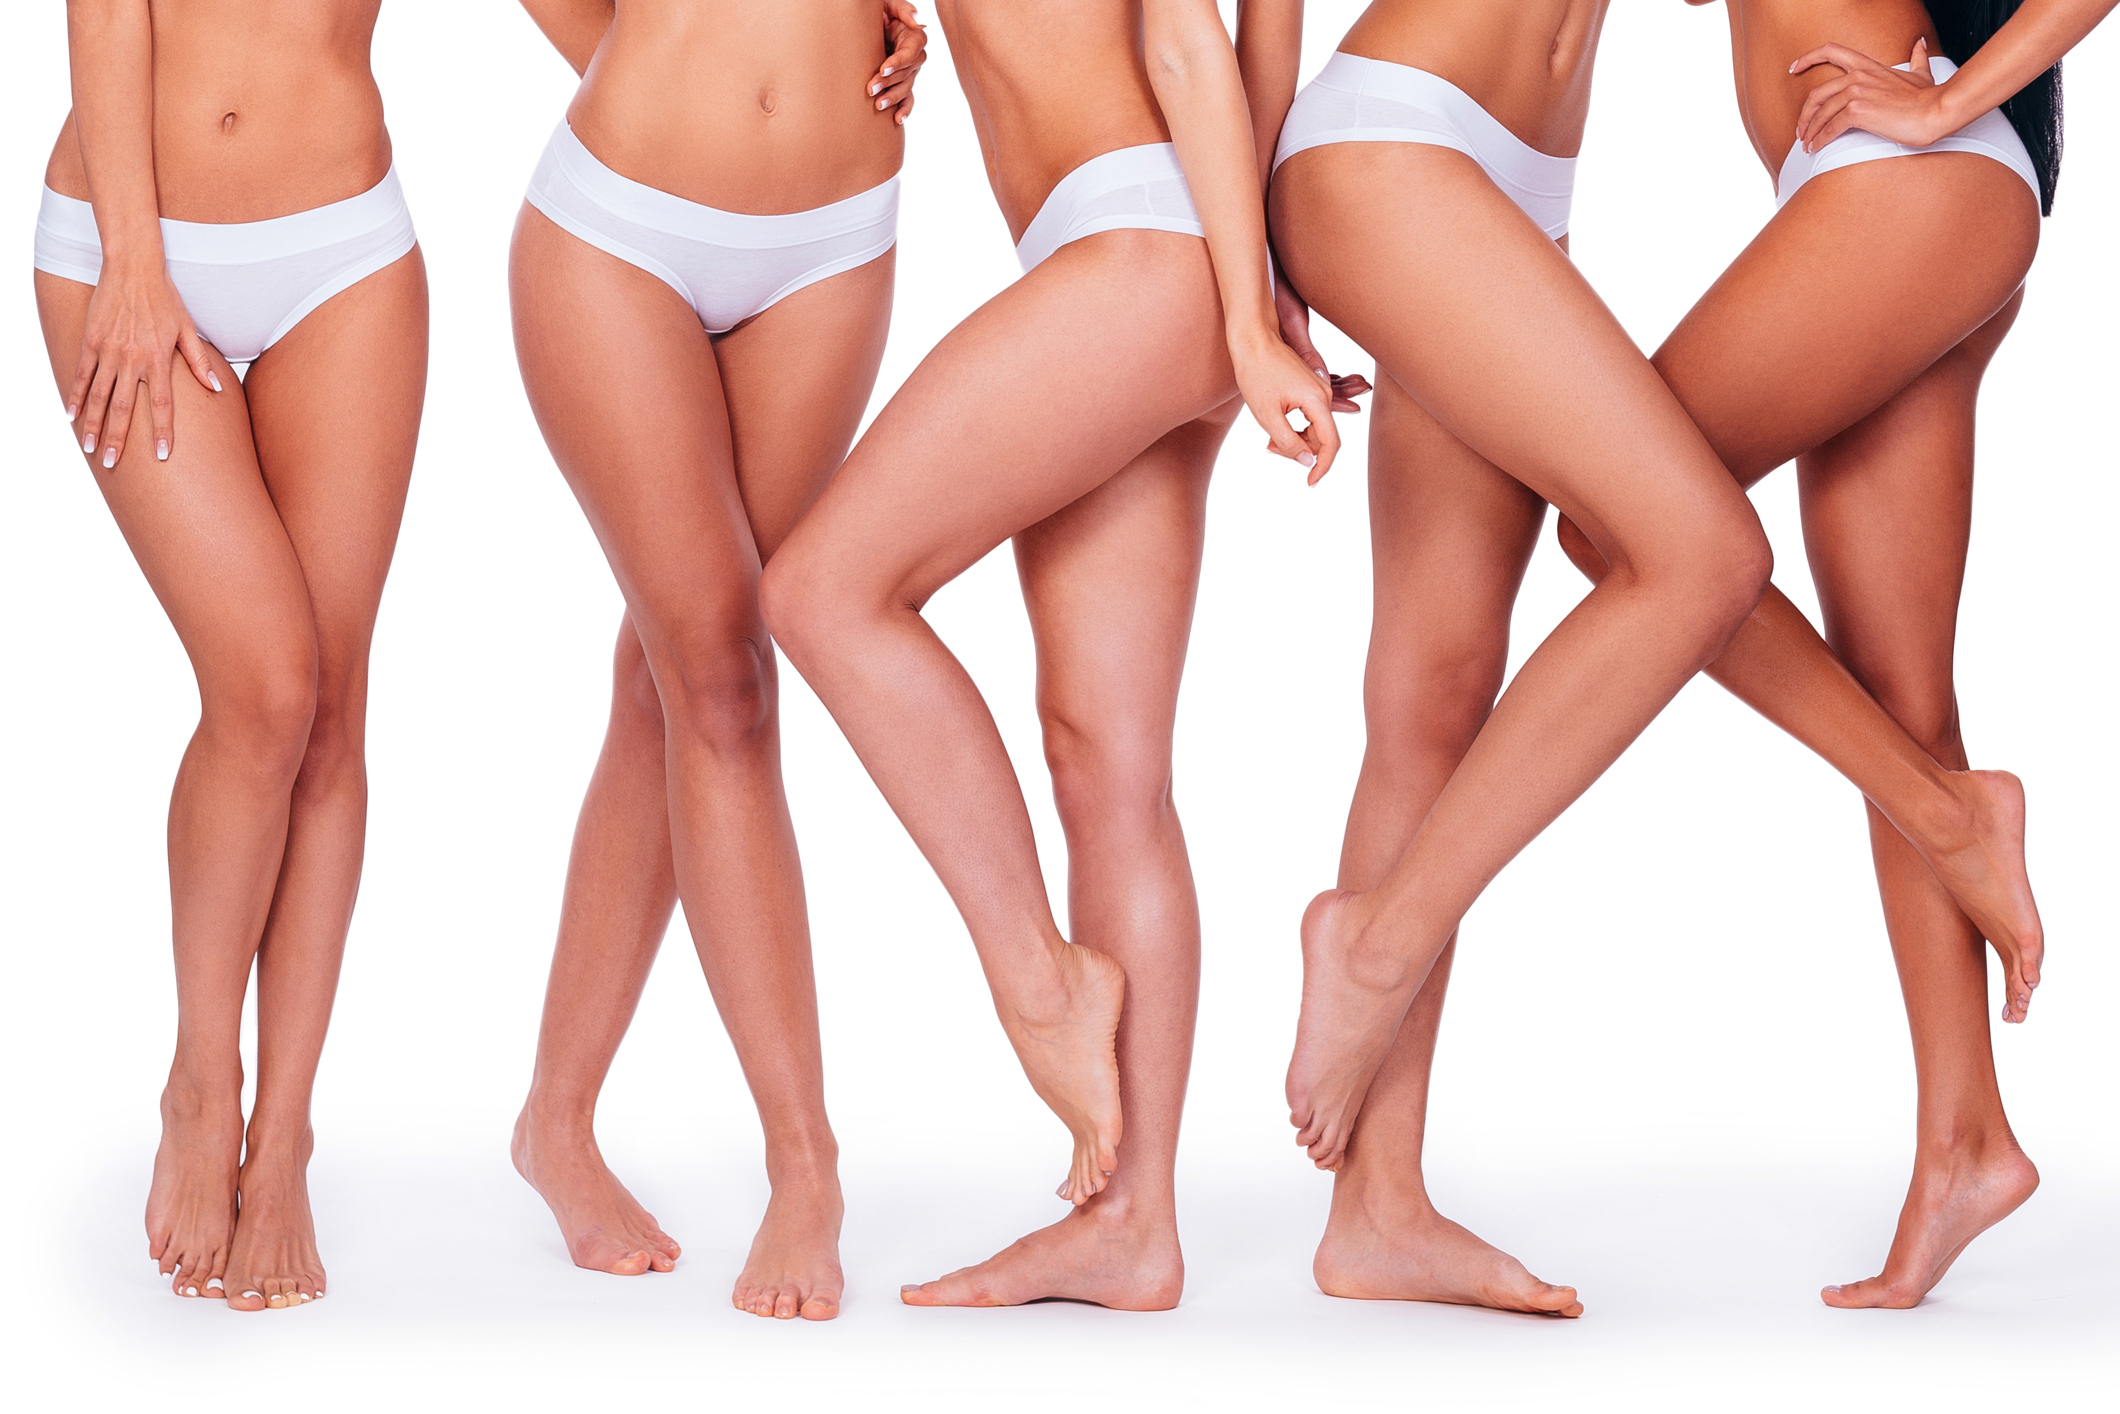 Laser Hair Removal - Save your time and hassle on razors, waxing, and creams. Start enjoying your shower time while kissing goodbye those unsightly ingrown hairs and razor burn.Experience what it's like to have smooth skin without all that frustration!